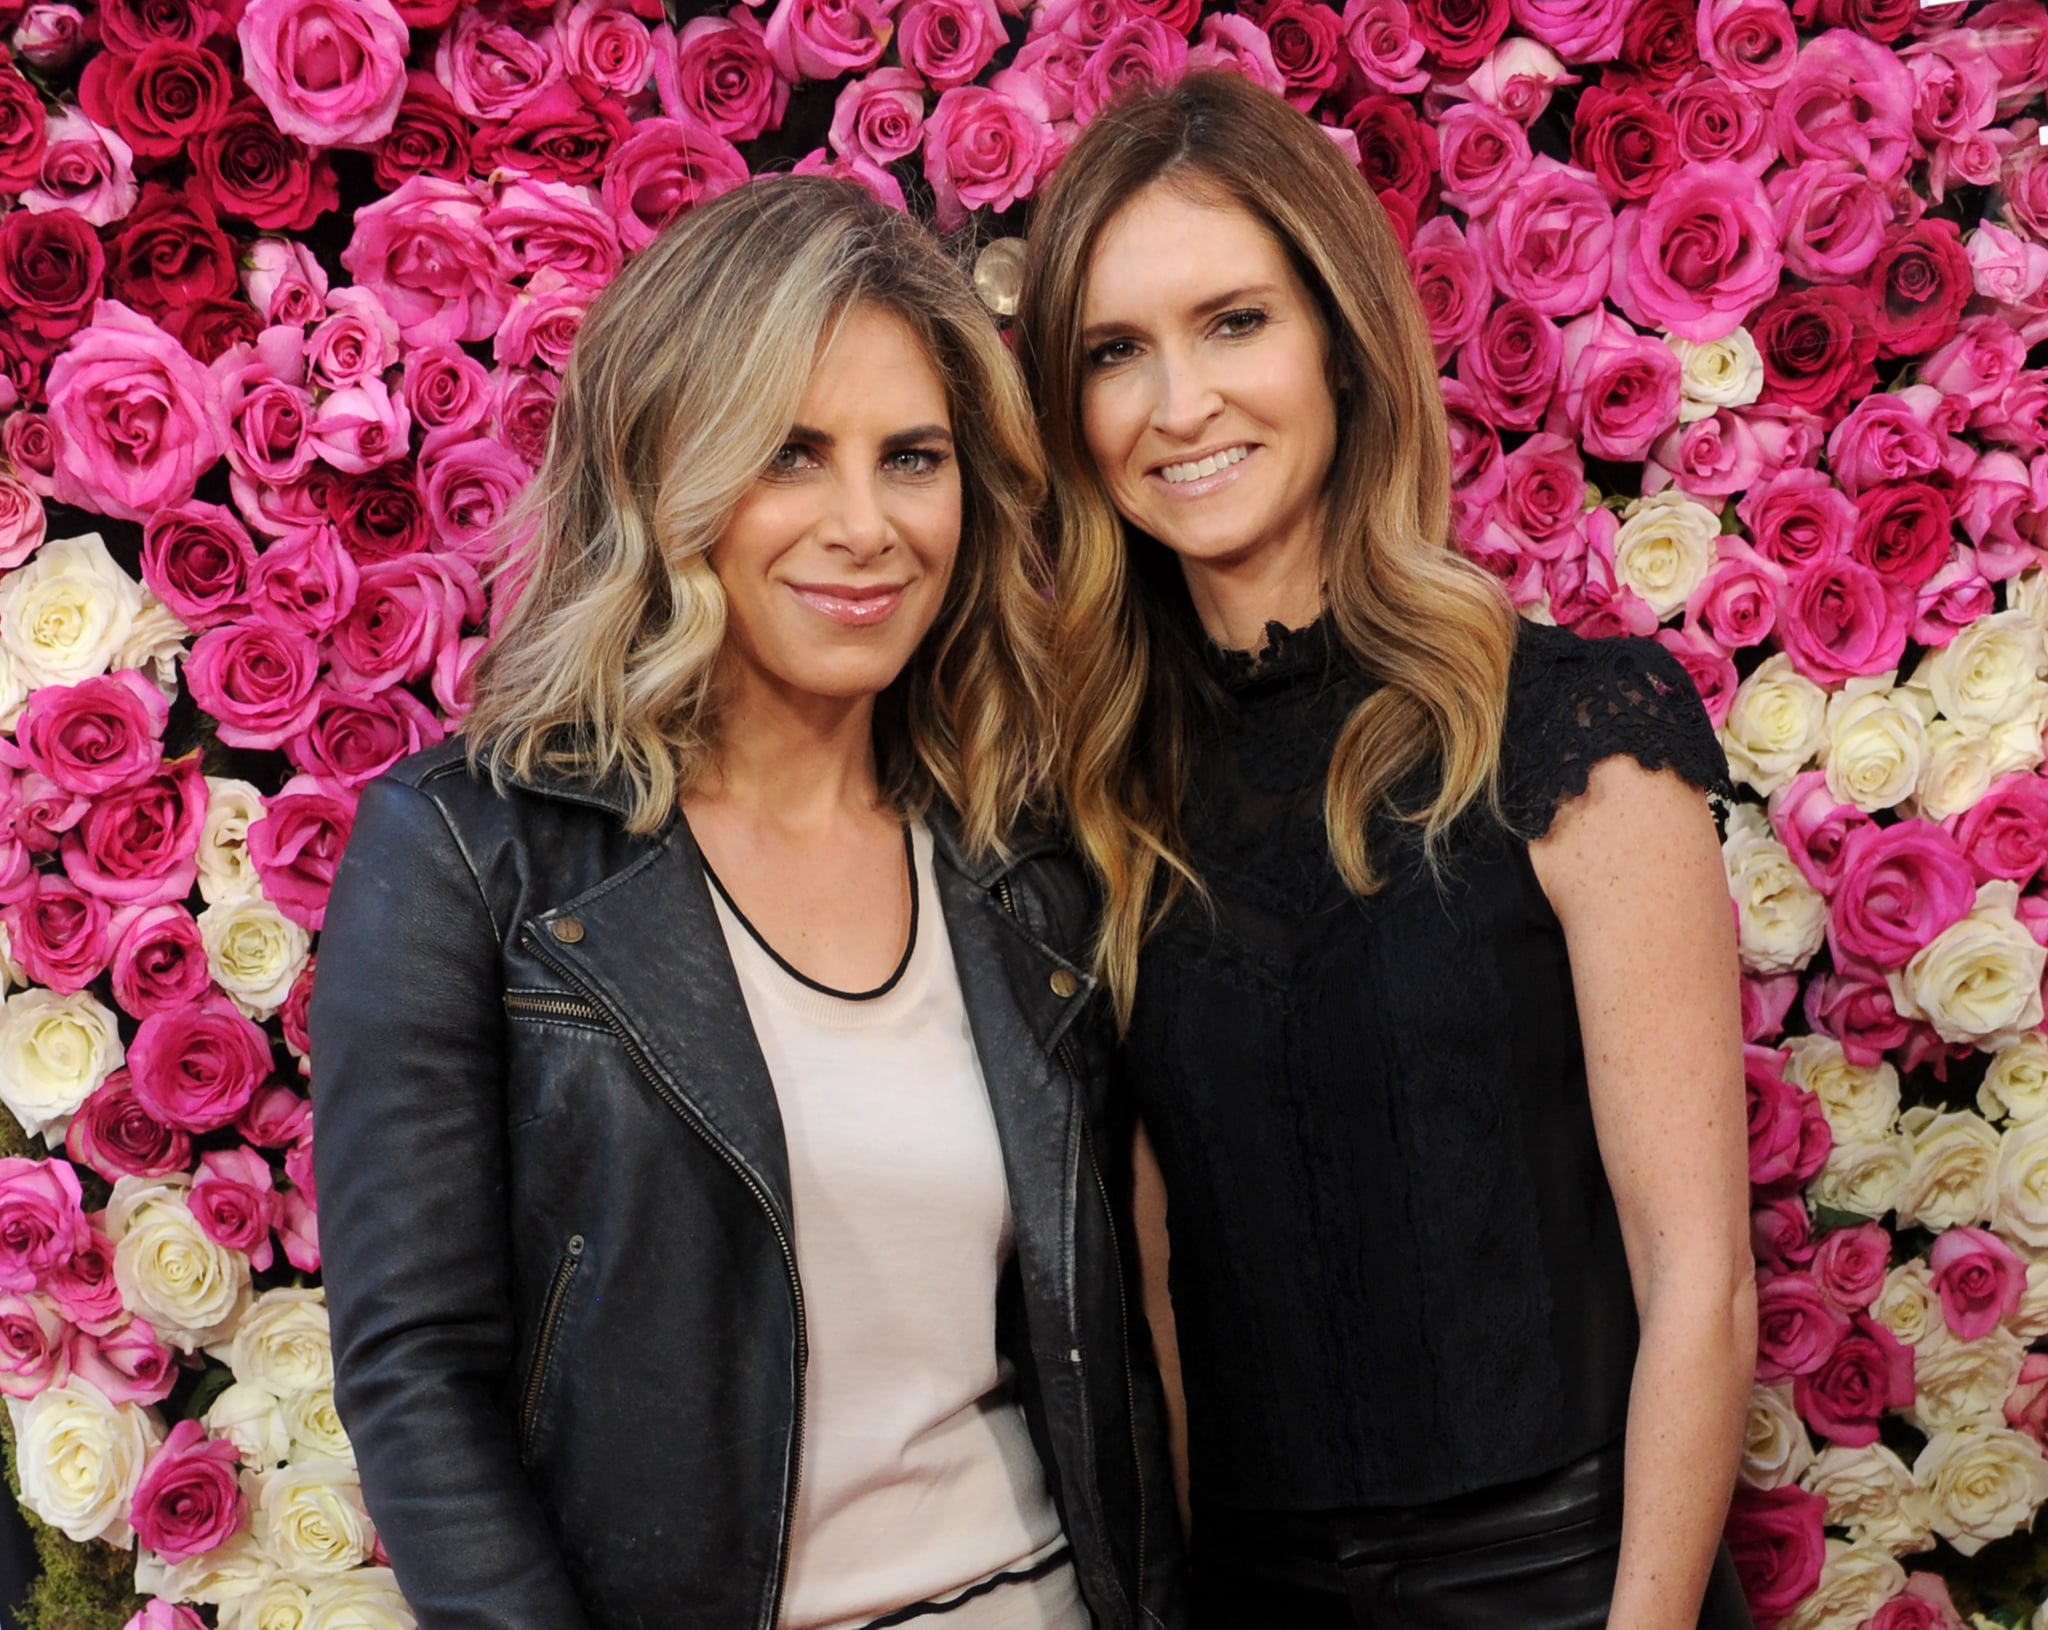 HOLLYWOOD, CA - APRIL 13:  Jillian Michaels and Heidi Rhoades arrive at the Open Roads World Premiere Of